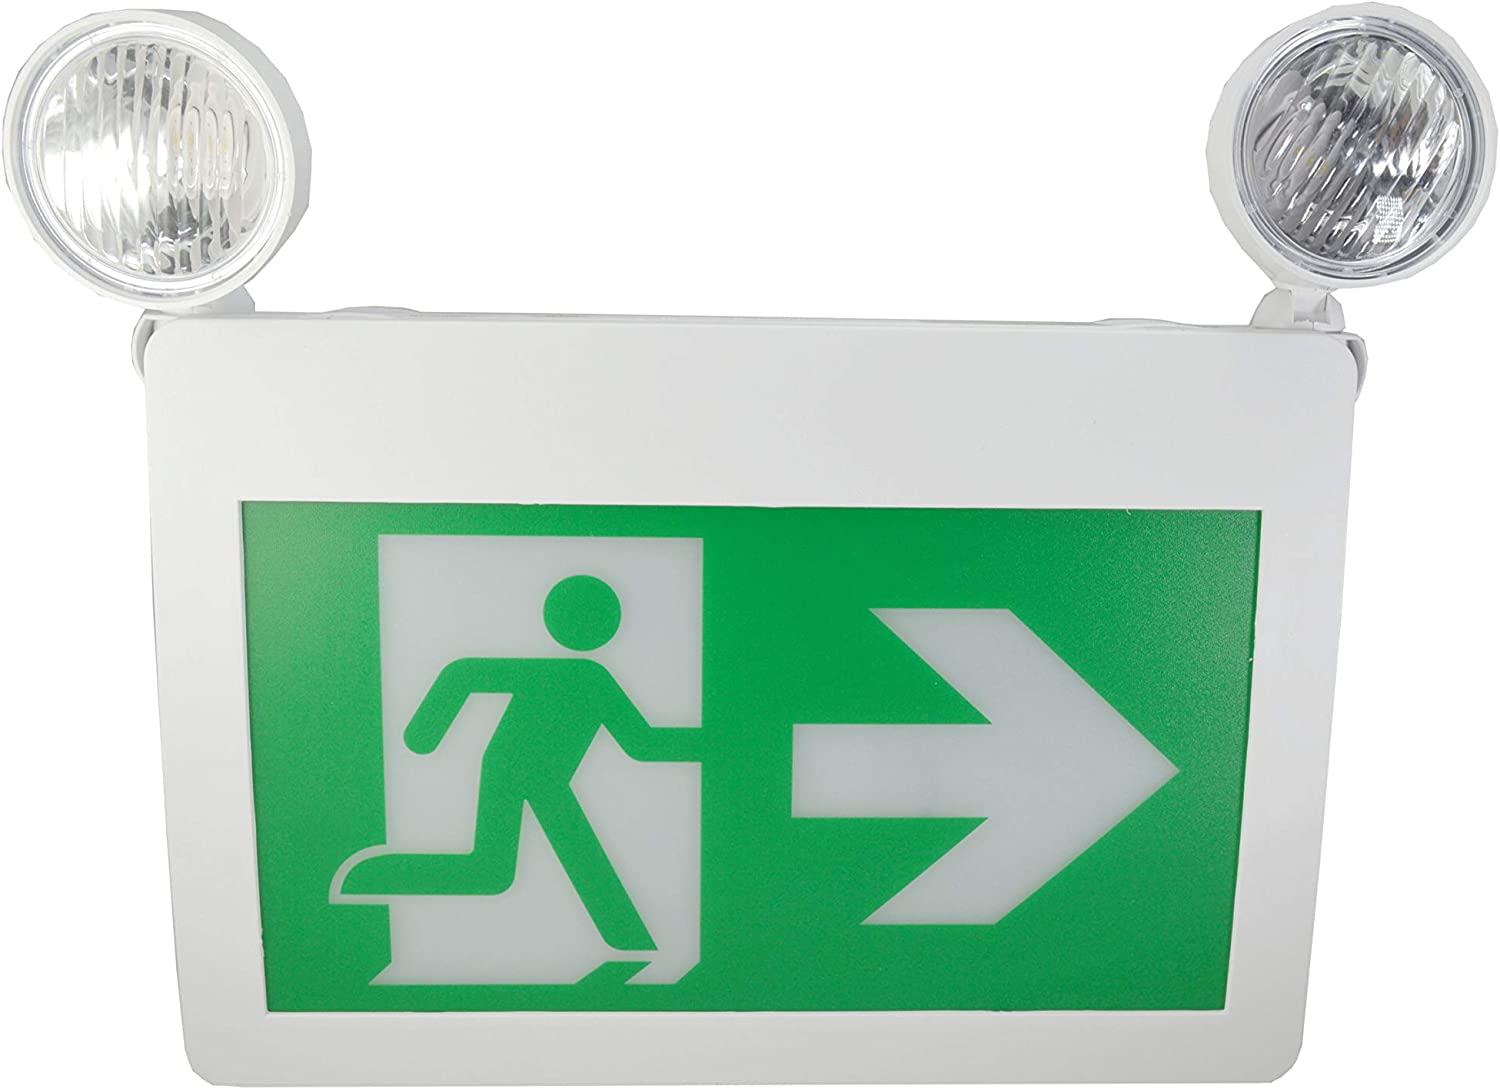 Mw Led Exit Sign Cm 316 Running Man Thermoplastic Sign Combo Emergency Light Led With 2 Heads Led 2w X 2 Left Right Battery Backup For 120 Minutes 120v 347v Universal Mounting Csa Listed Cm 316